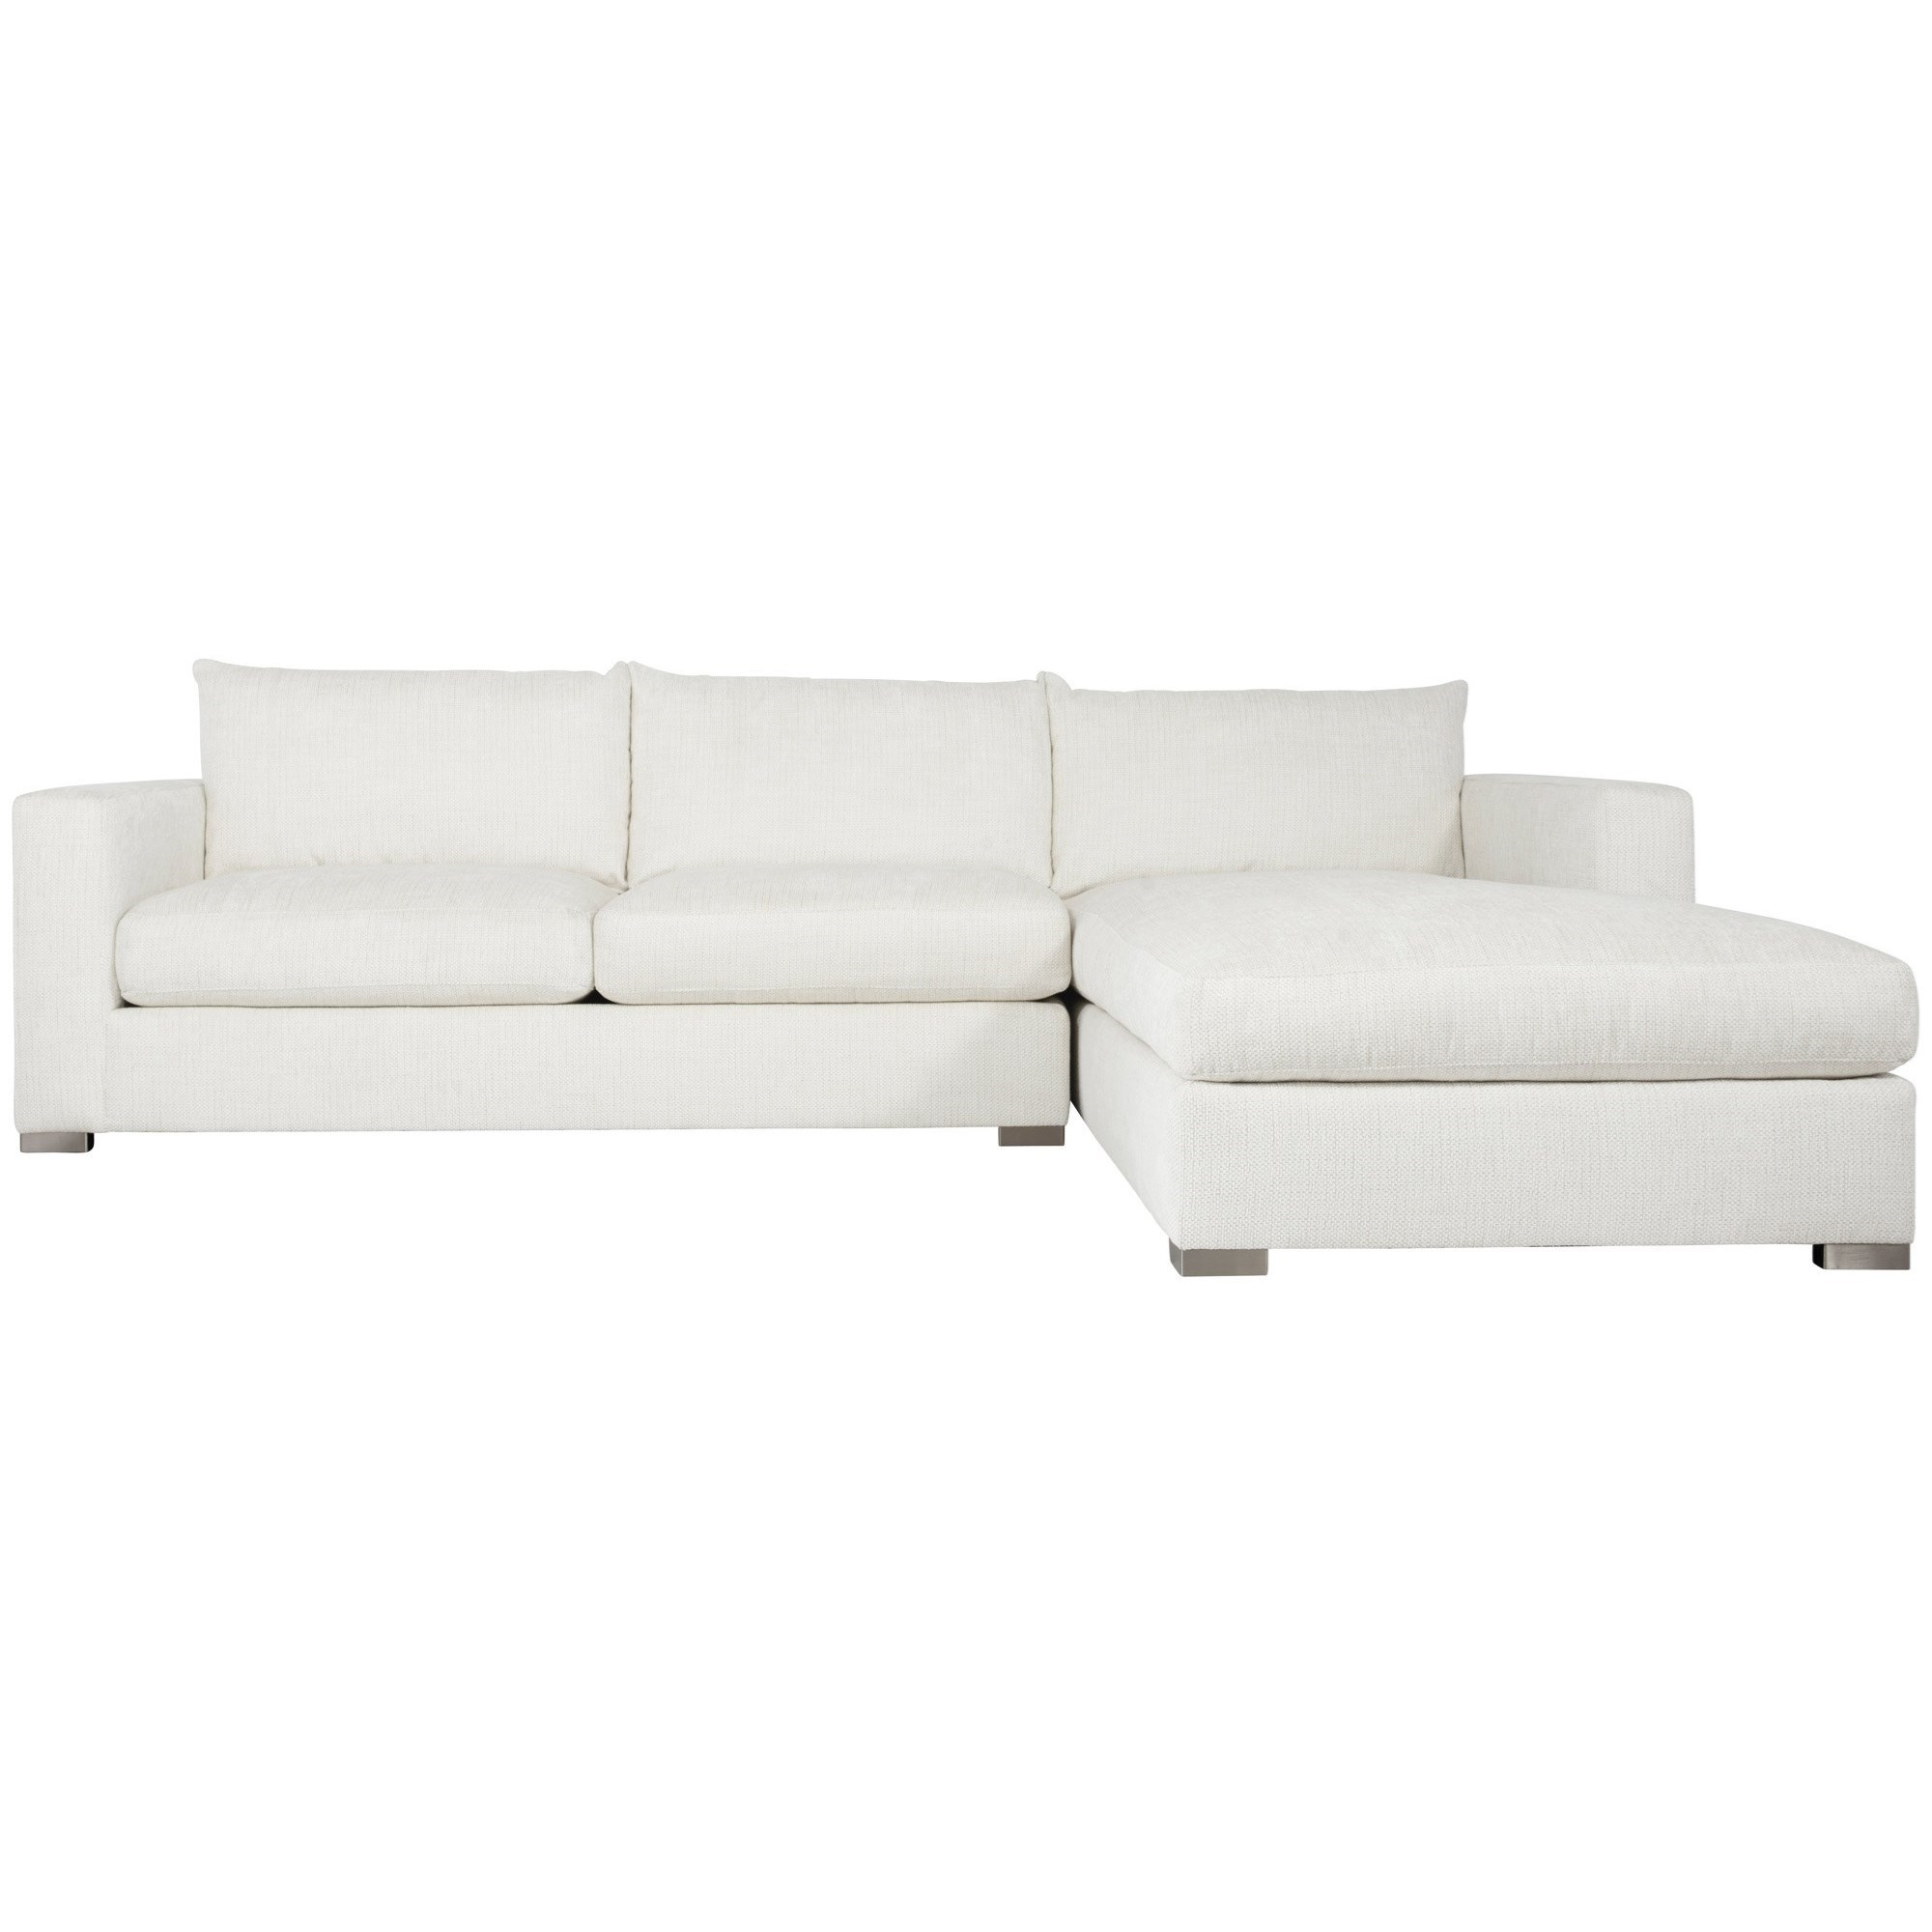 Interiors - Helena 2-Piece Sectional by Bernhardt at Fisher Home Furnishings